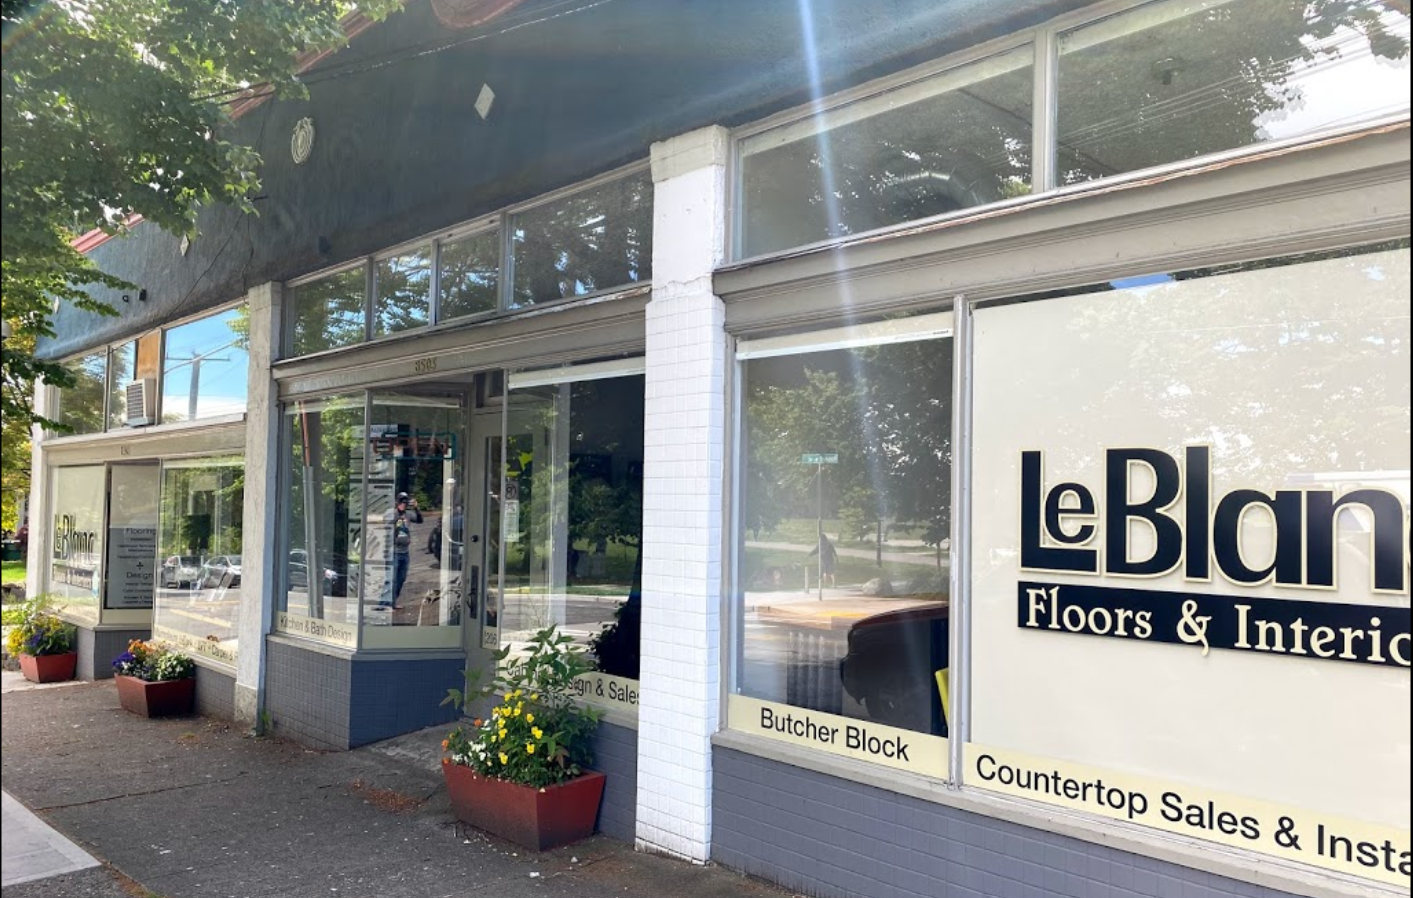 LeBlanc Floors & Interiors - 8501 Roosevelt Way NE, Seattle, WA 98115